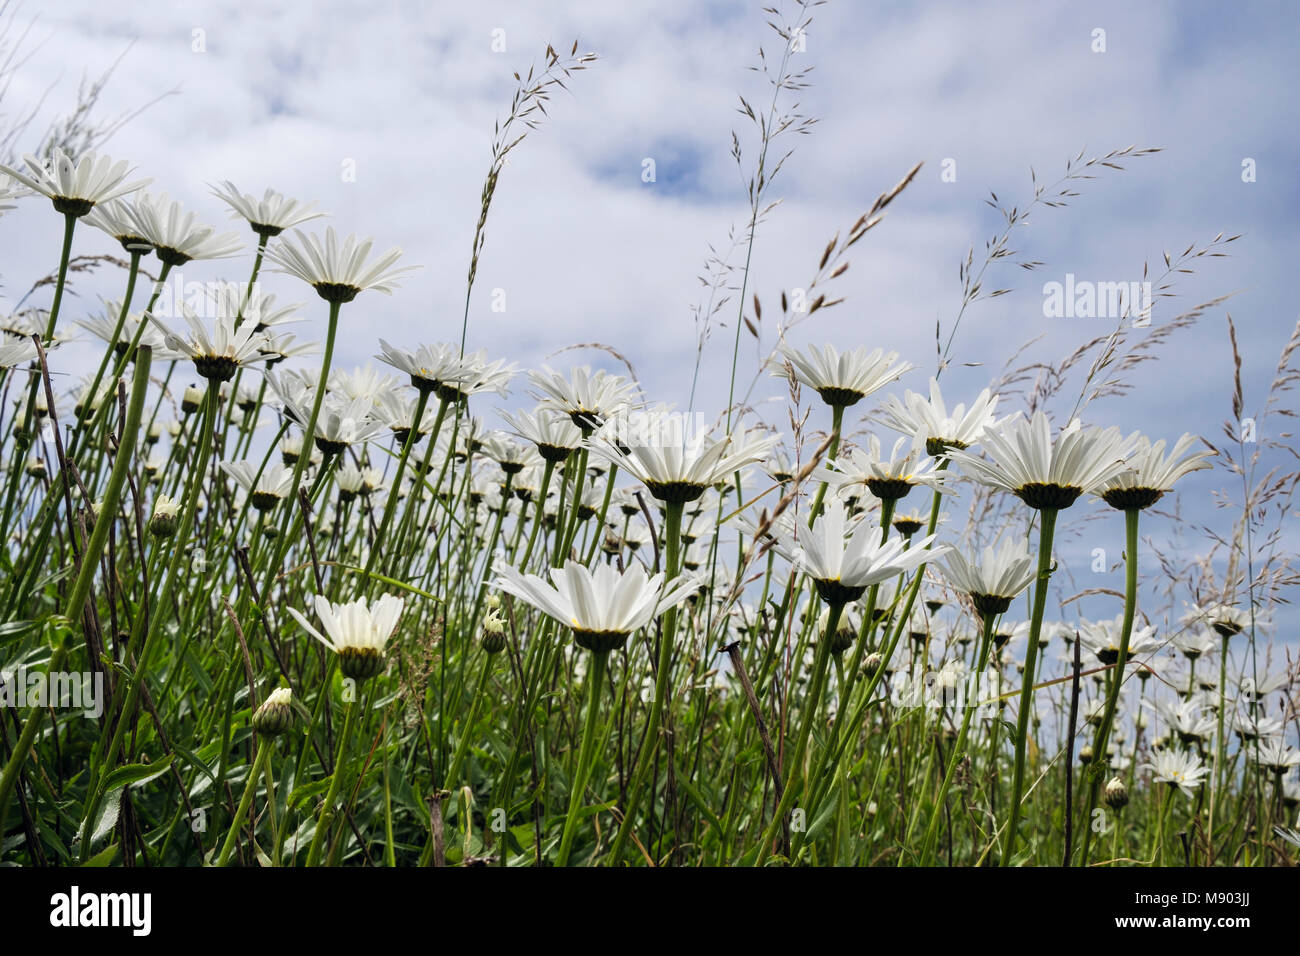 Worm's eye view of Ox-Eye Daisies (Leucanthemum vulgare) growing with wild grasses in summer. UK, Britain Stock Photo